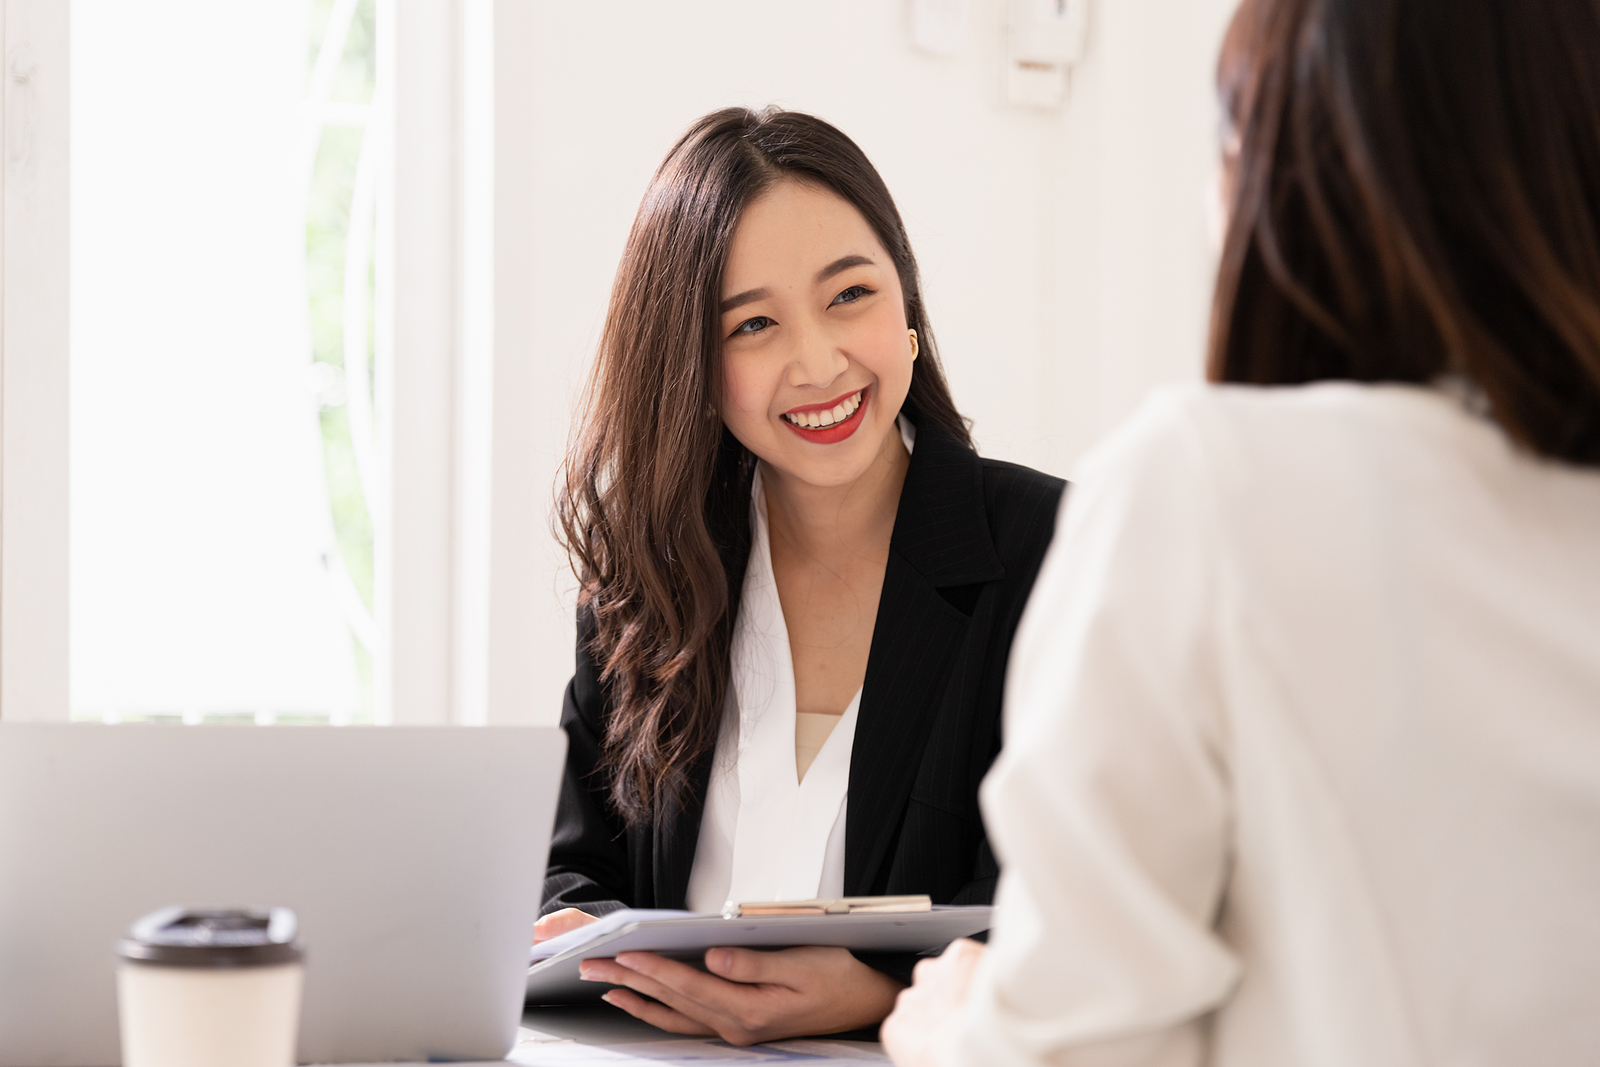 Interview Question: Why Do You Want To Work Here?